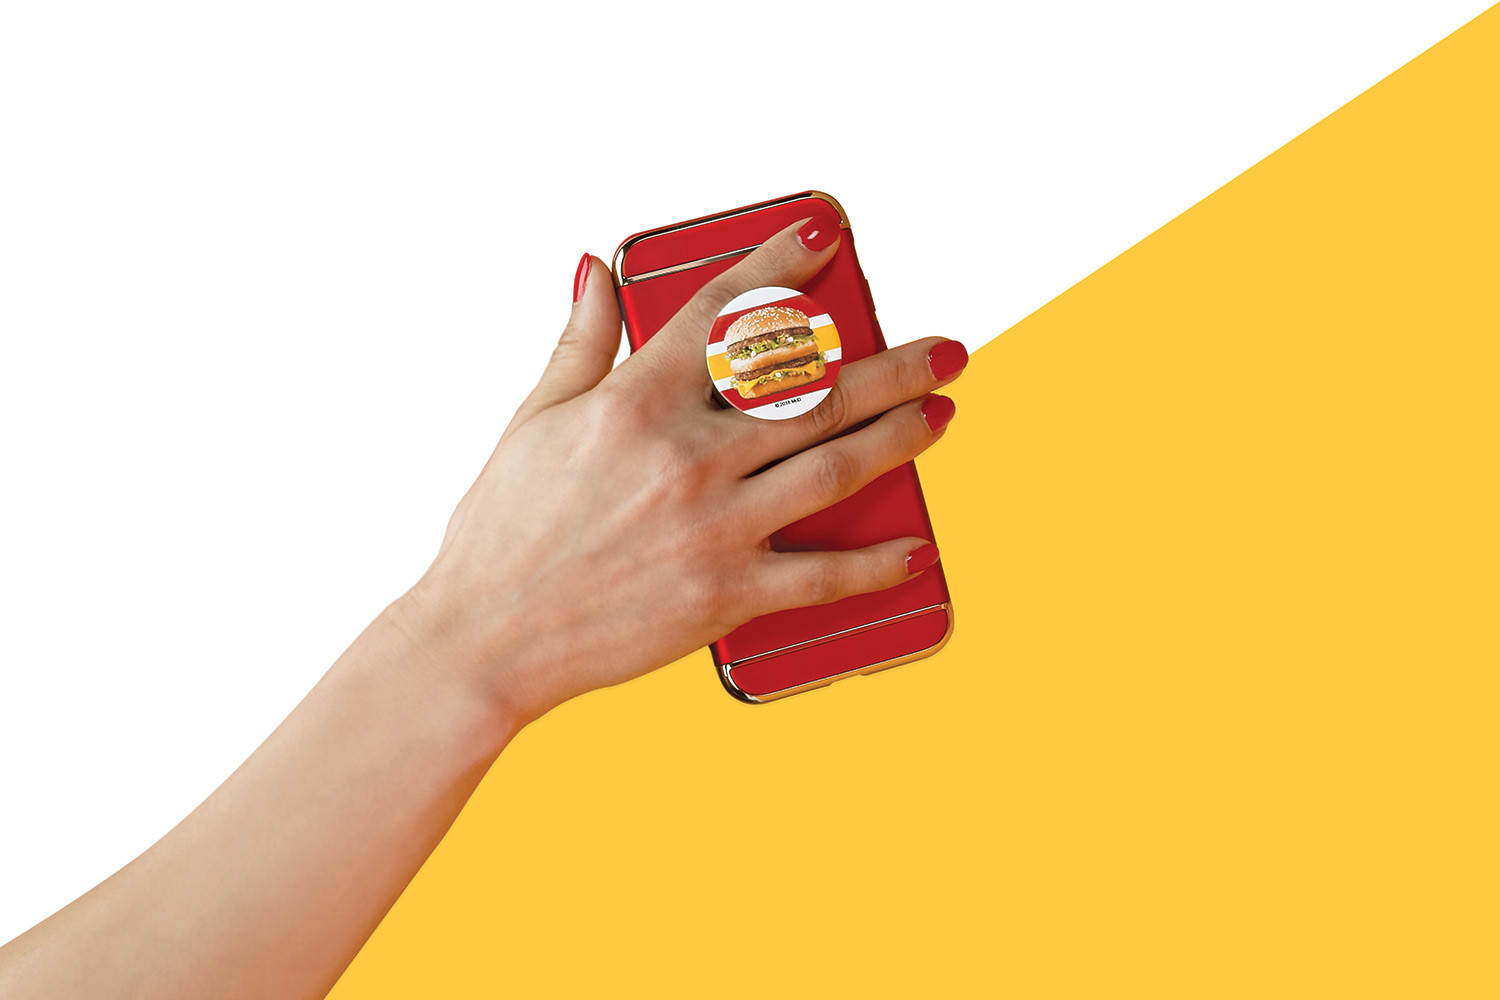 https_%2F%2Fhypebeast.com%2Fimage%2F2018%2F07%2Fmcdonalds-global-mcdelivery-day-collection-5.jpg